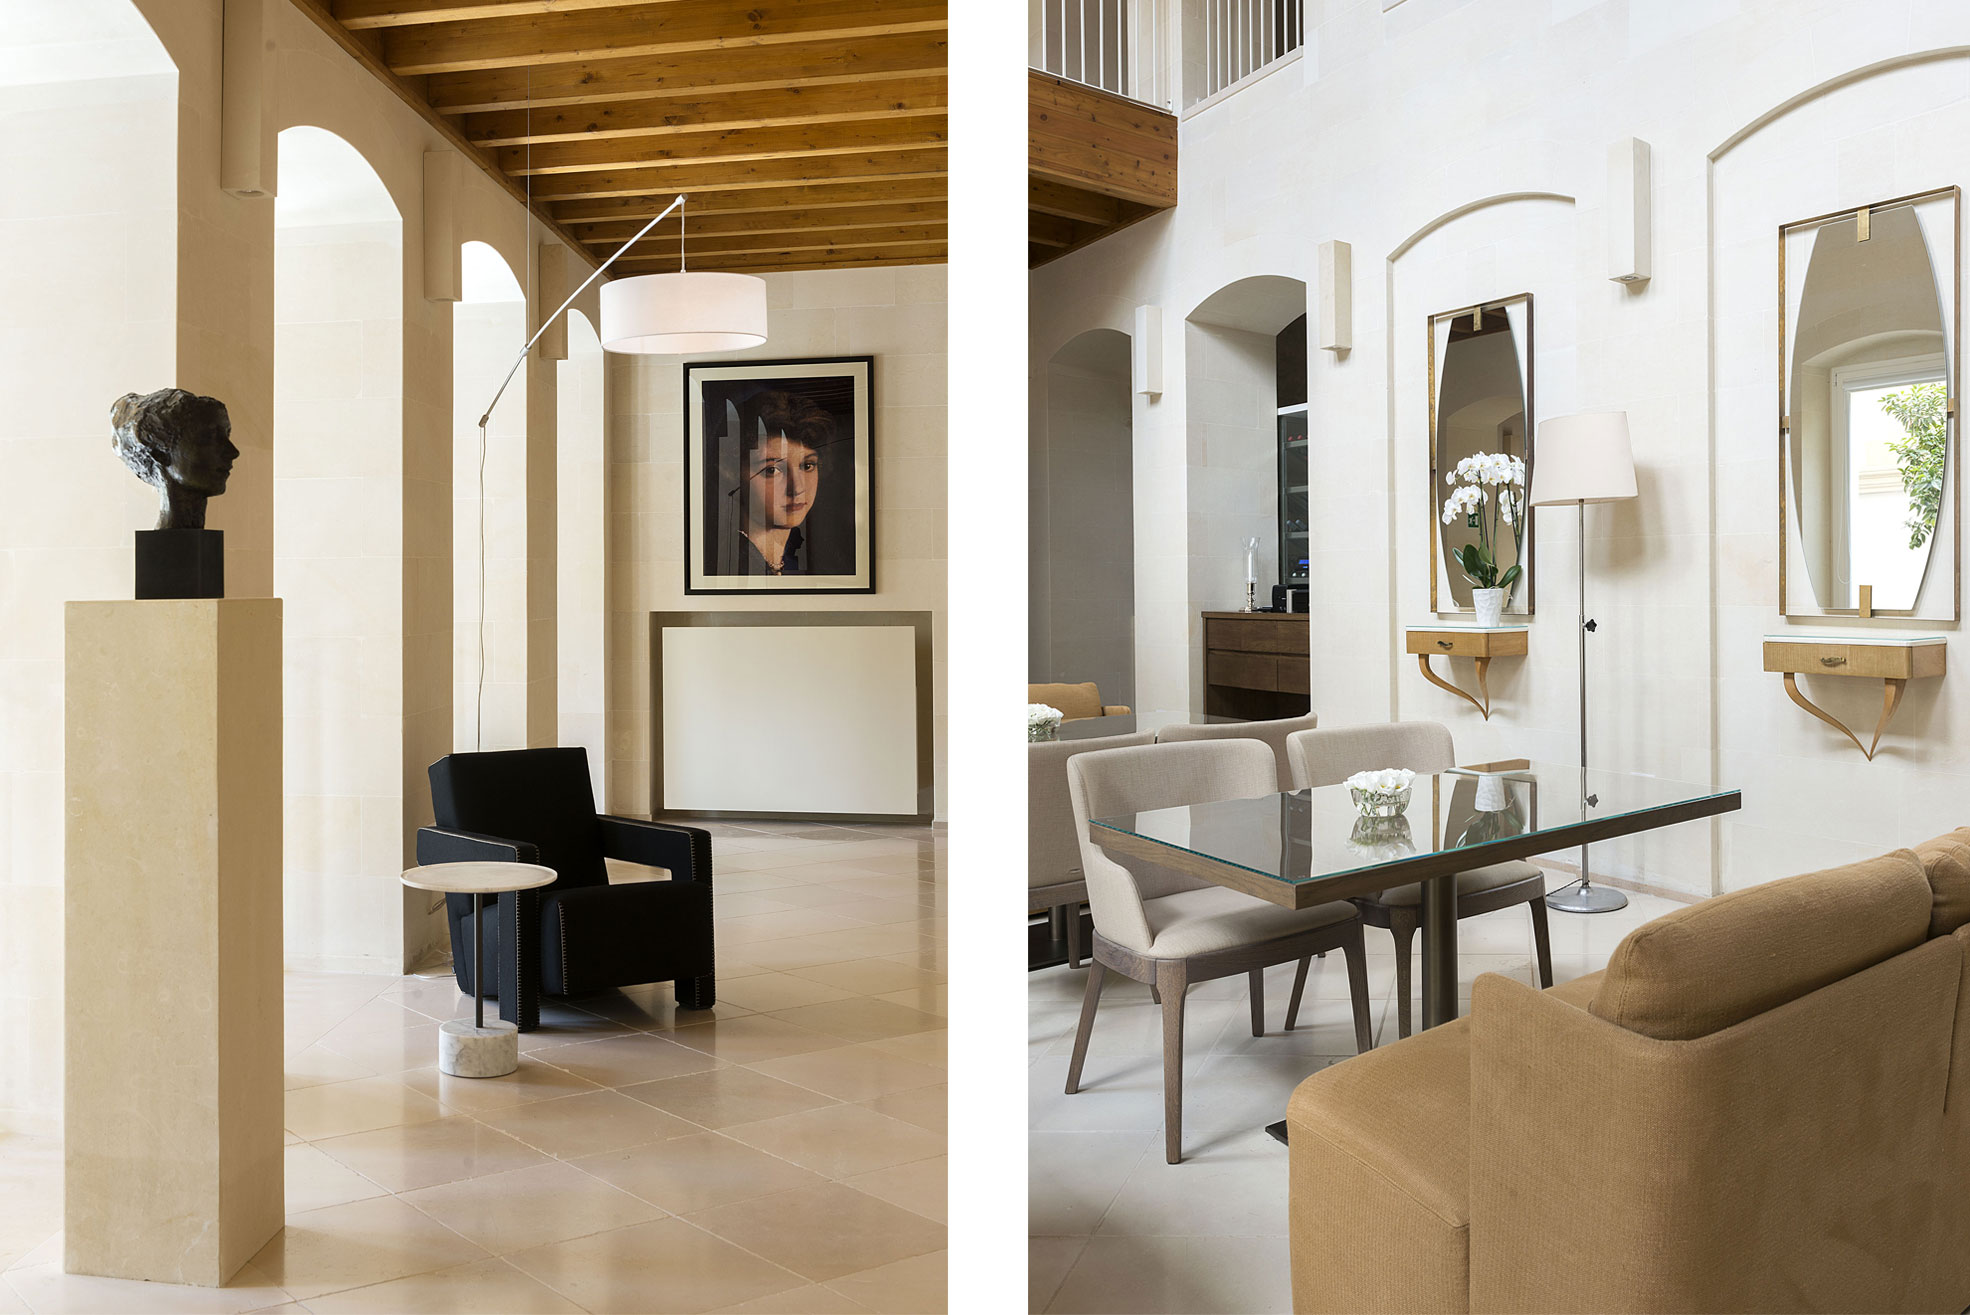 Armchair and painting in the aisle and lounge area of La fiermontina resort in Lecce Photographer Maria Teresa Furnari